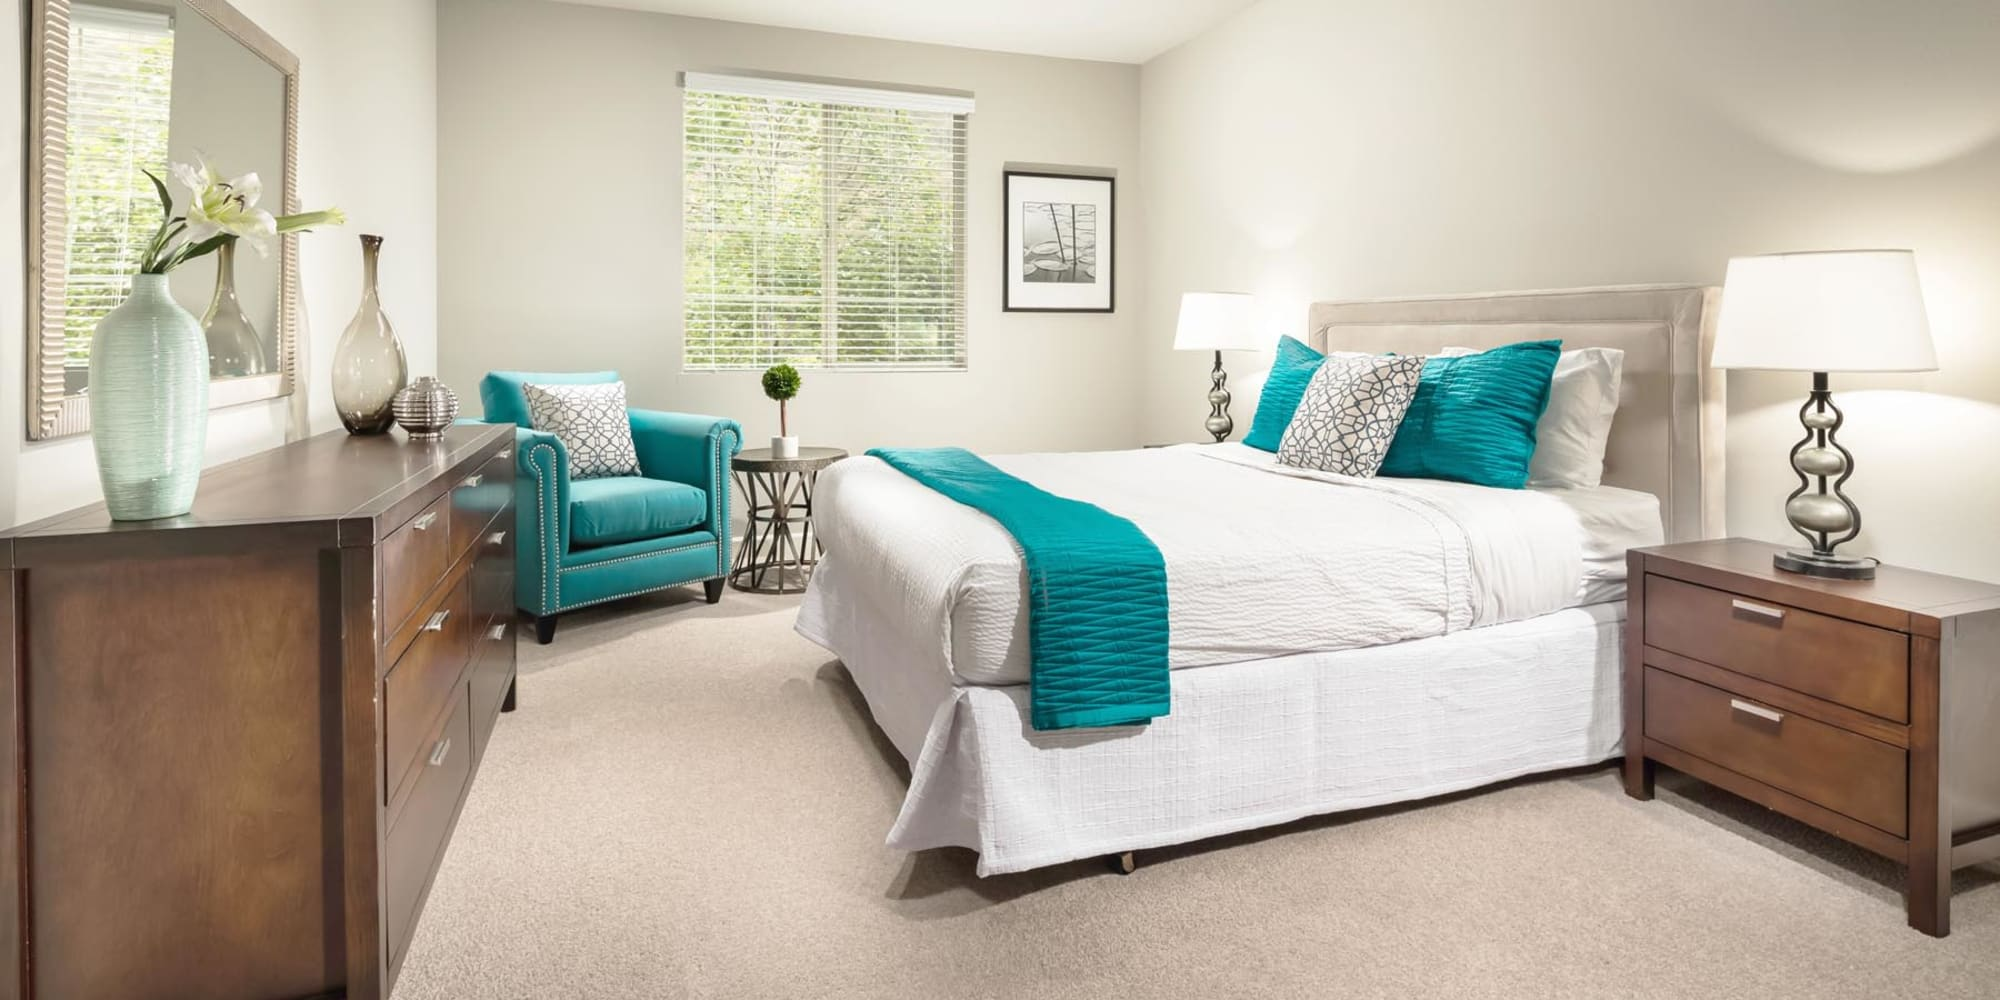 Classic furnishings and plush carpeting in a model home's primary bedroom at Mission Hills in Camarillo, California